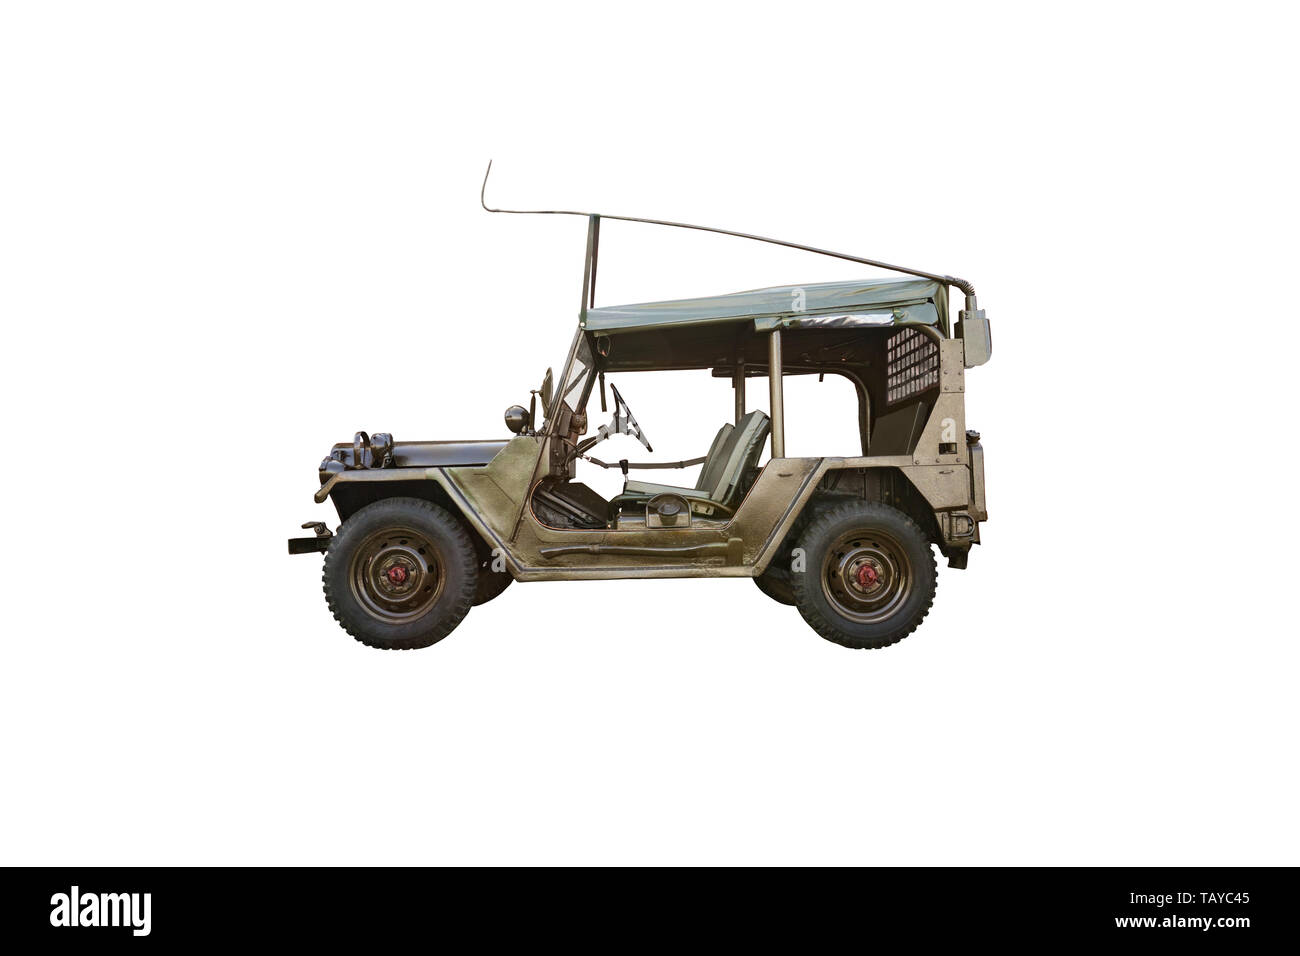 old retro 4x4 suv car blue color isolated on white background. M151 MUTT is an American army all-terrain vehicle, the successor to the army M38 and M3 - Stock Image